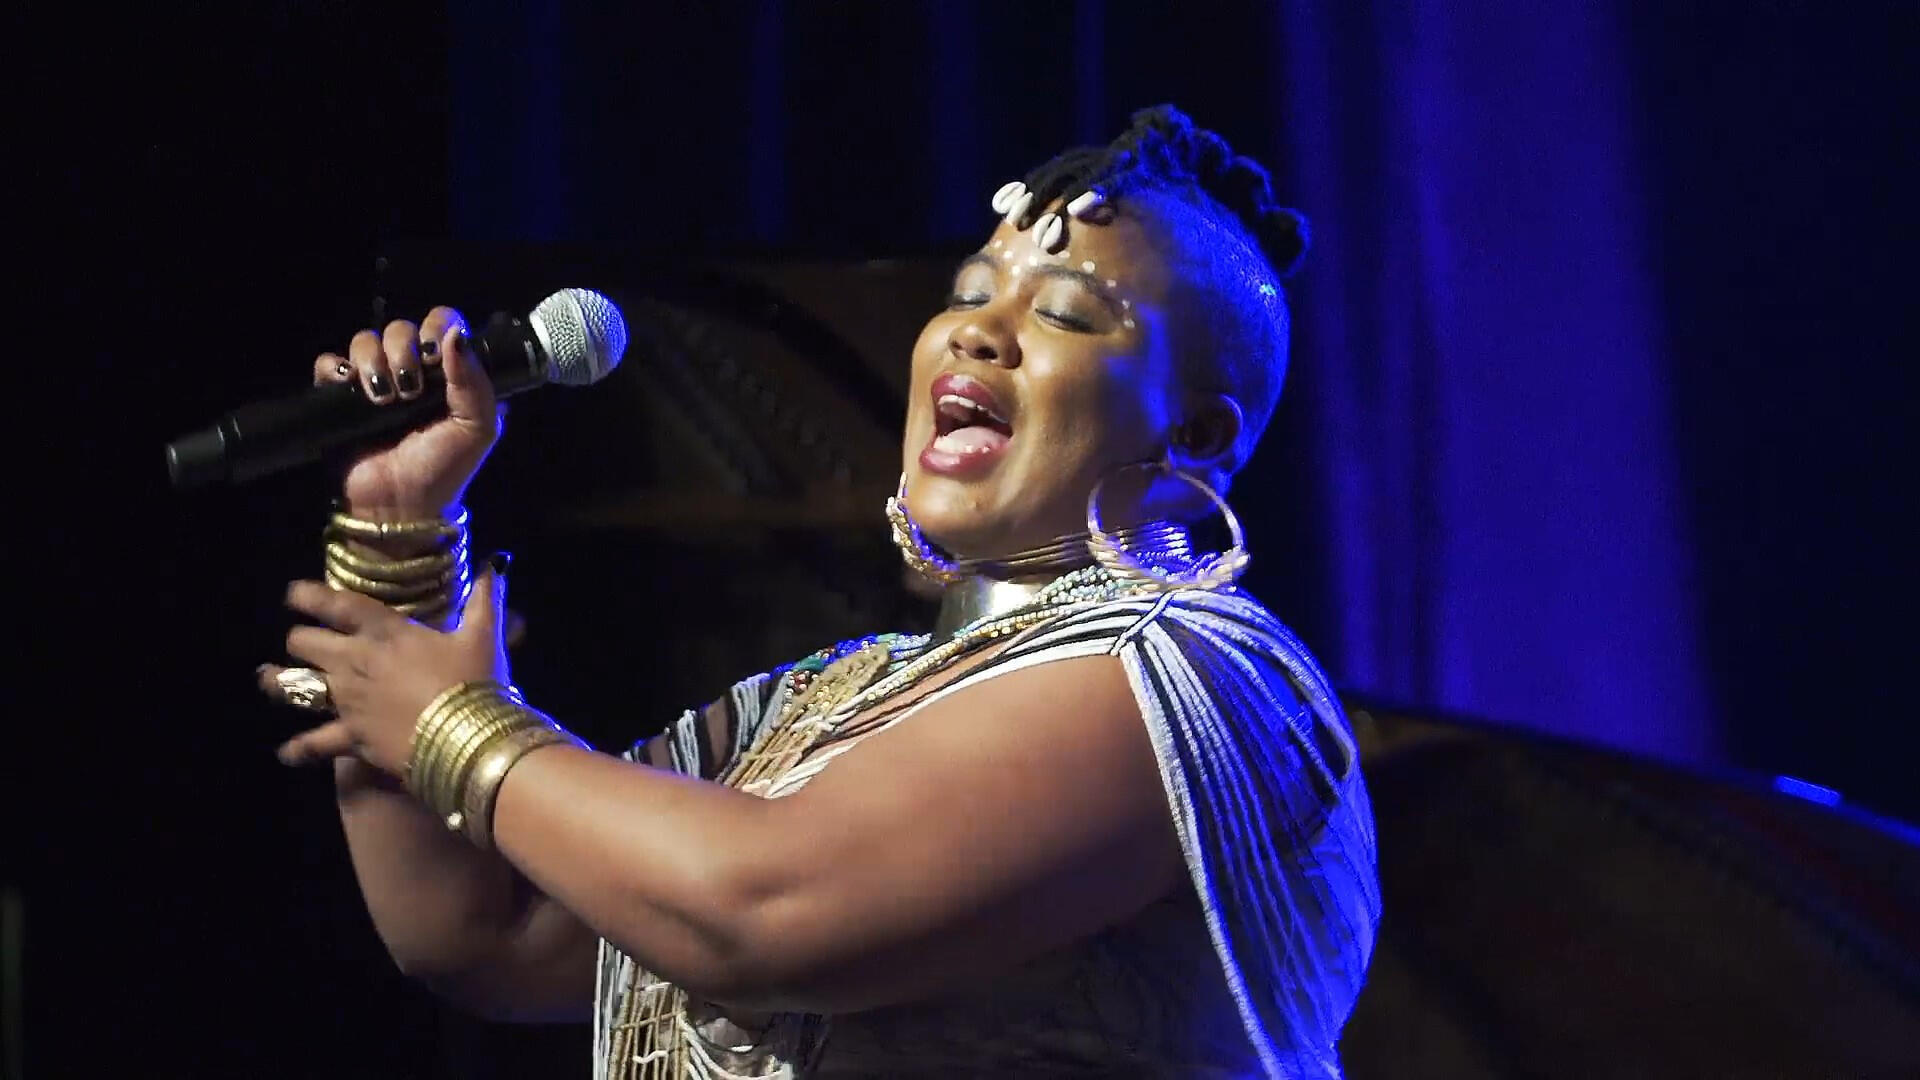 The South African artist Thandiswa Mazwai performed on 25 May during the Metis Festival at the Théâtre Jean Vilar, near Paris.  The cultural meeting celebrating South African music will end on June 22.